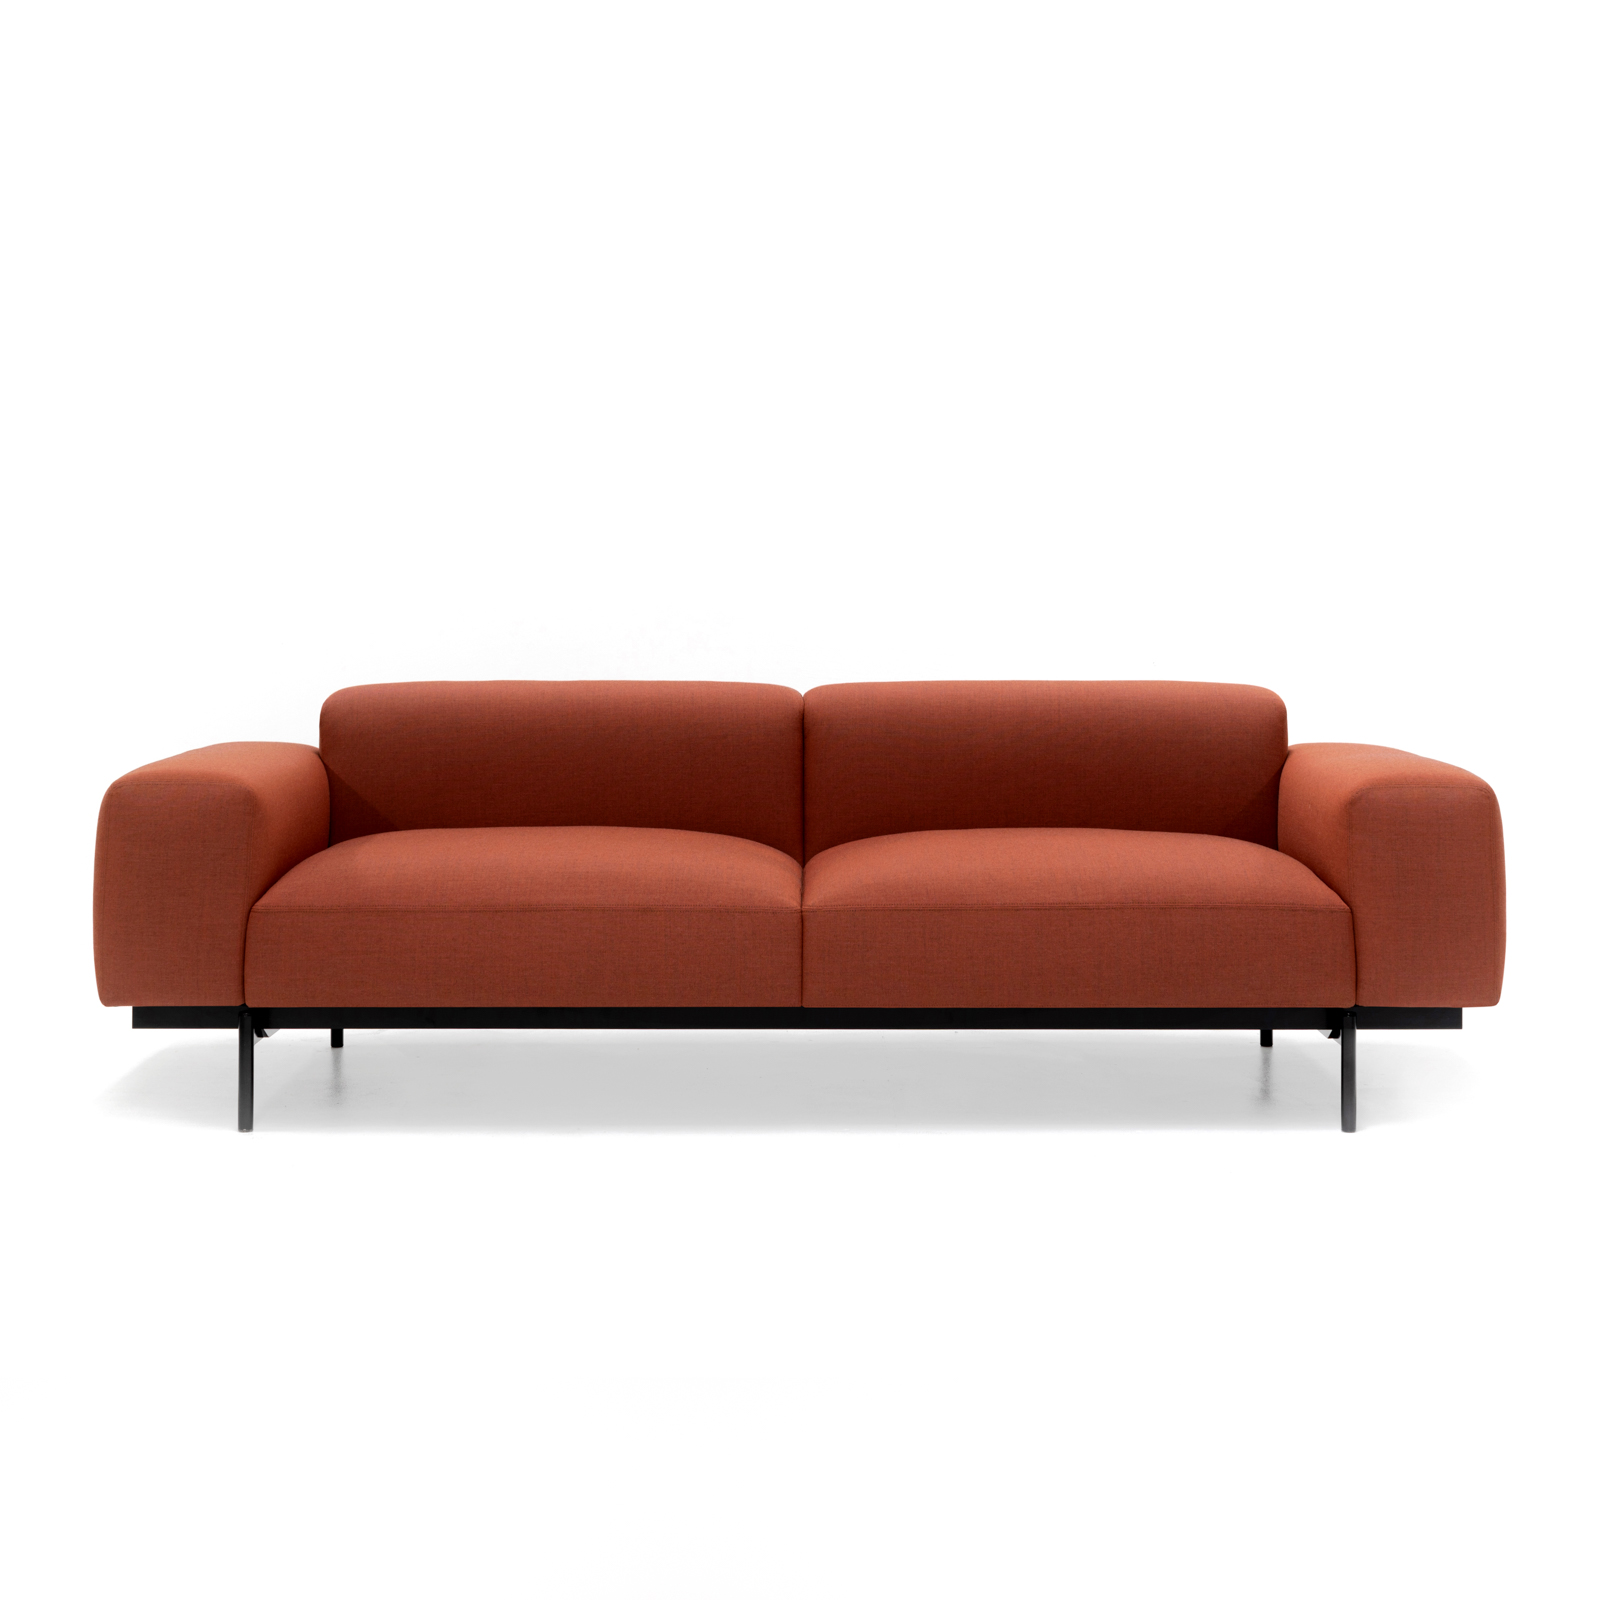 Permanent Future Perry Sofa 2.5 Seater Native Red Ochre Pf Sf Pr 2.5 Nro Front View